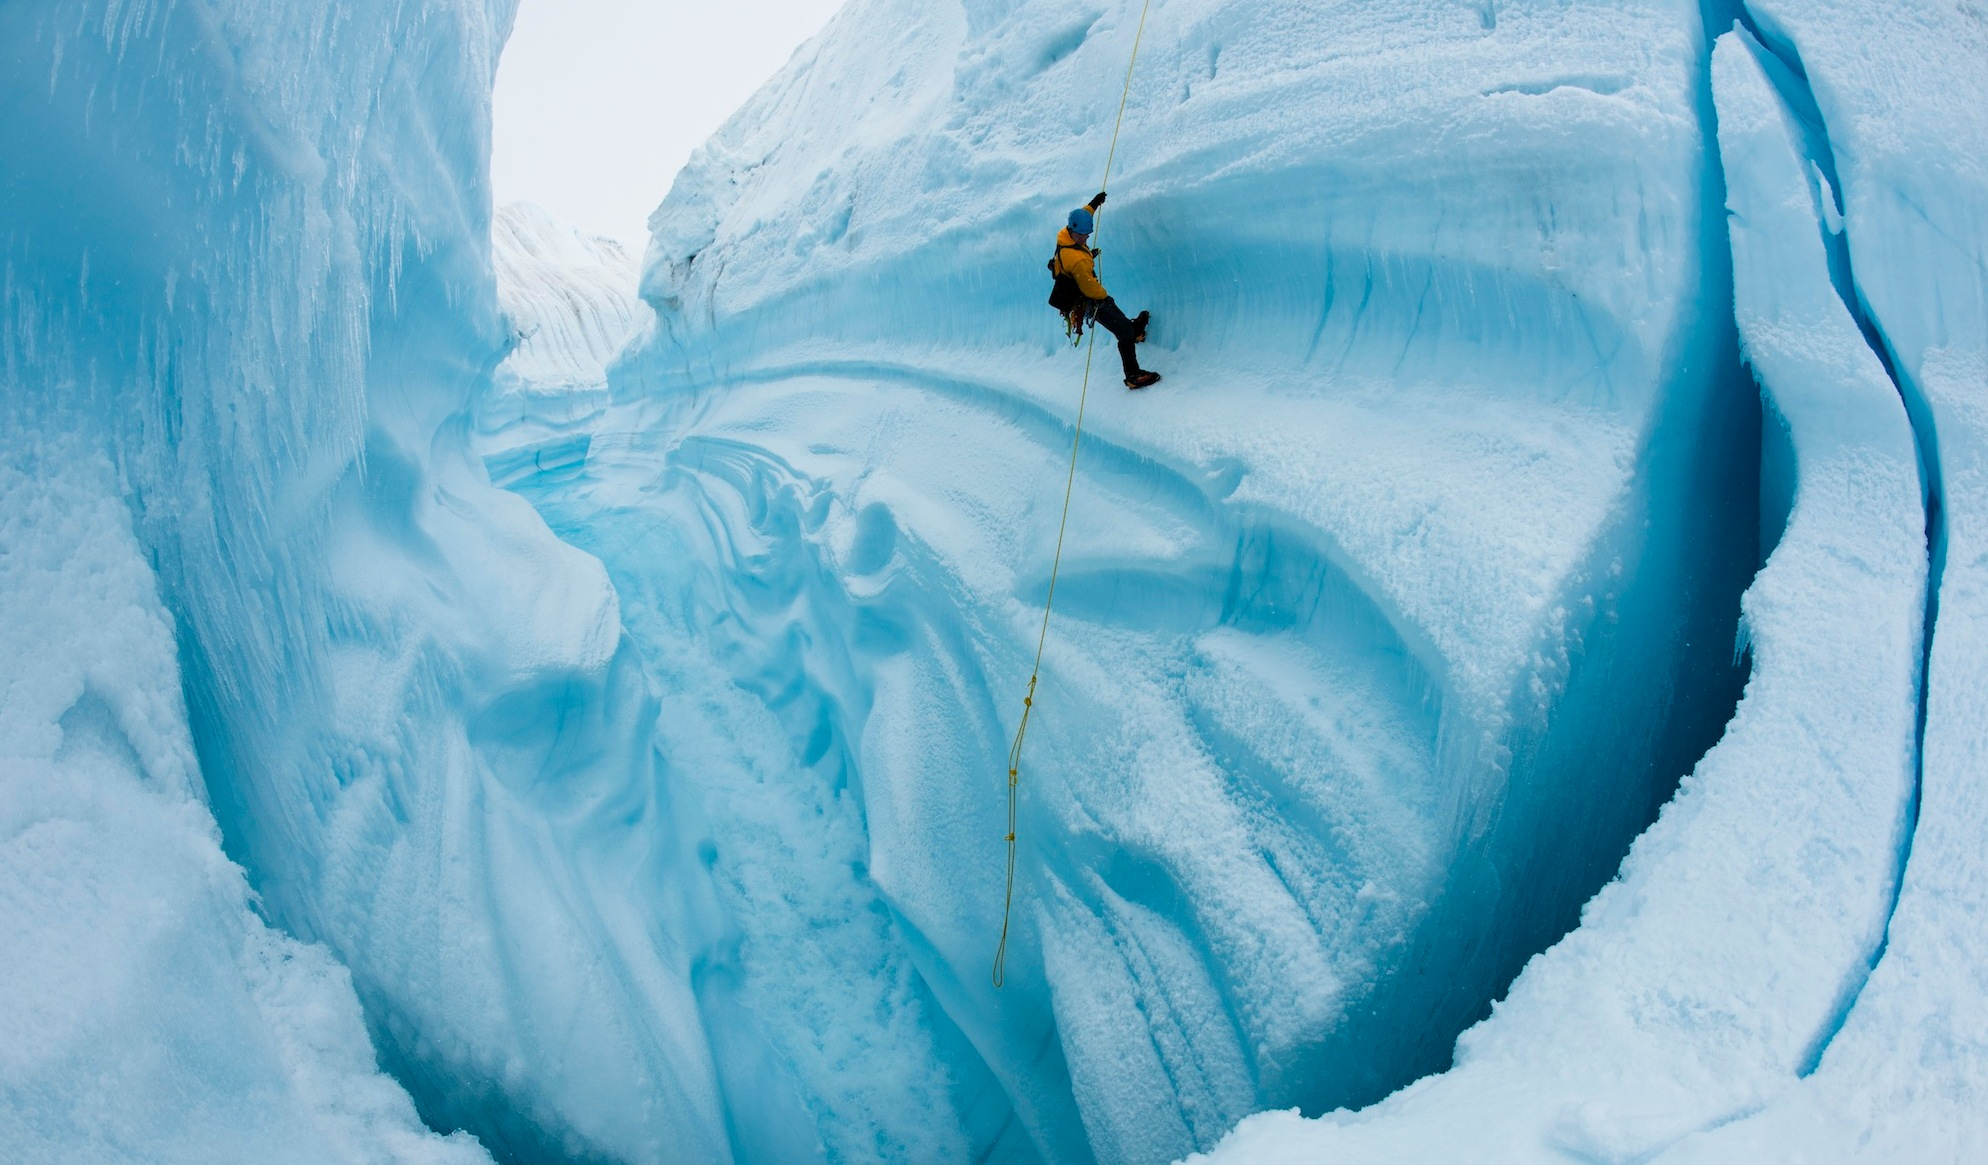 Adam LeWinter ice climbing in Survey Canyon, Greenland. Image courtesy of James Balog, Extreme Ice Survey